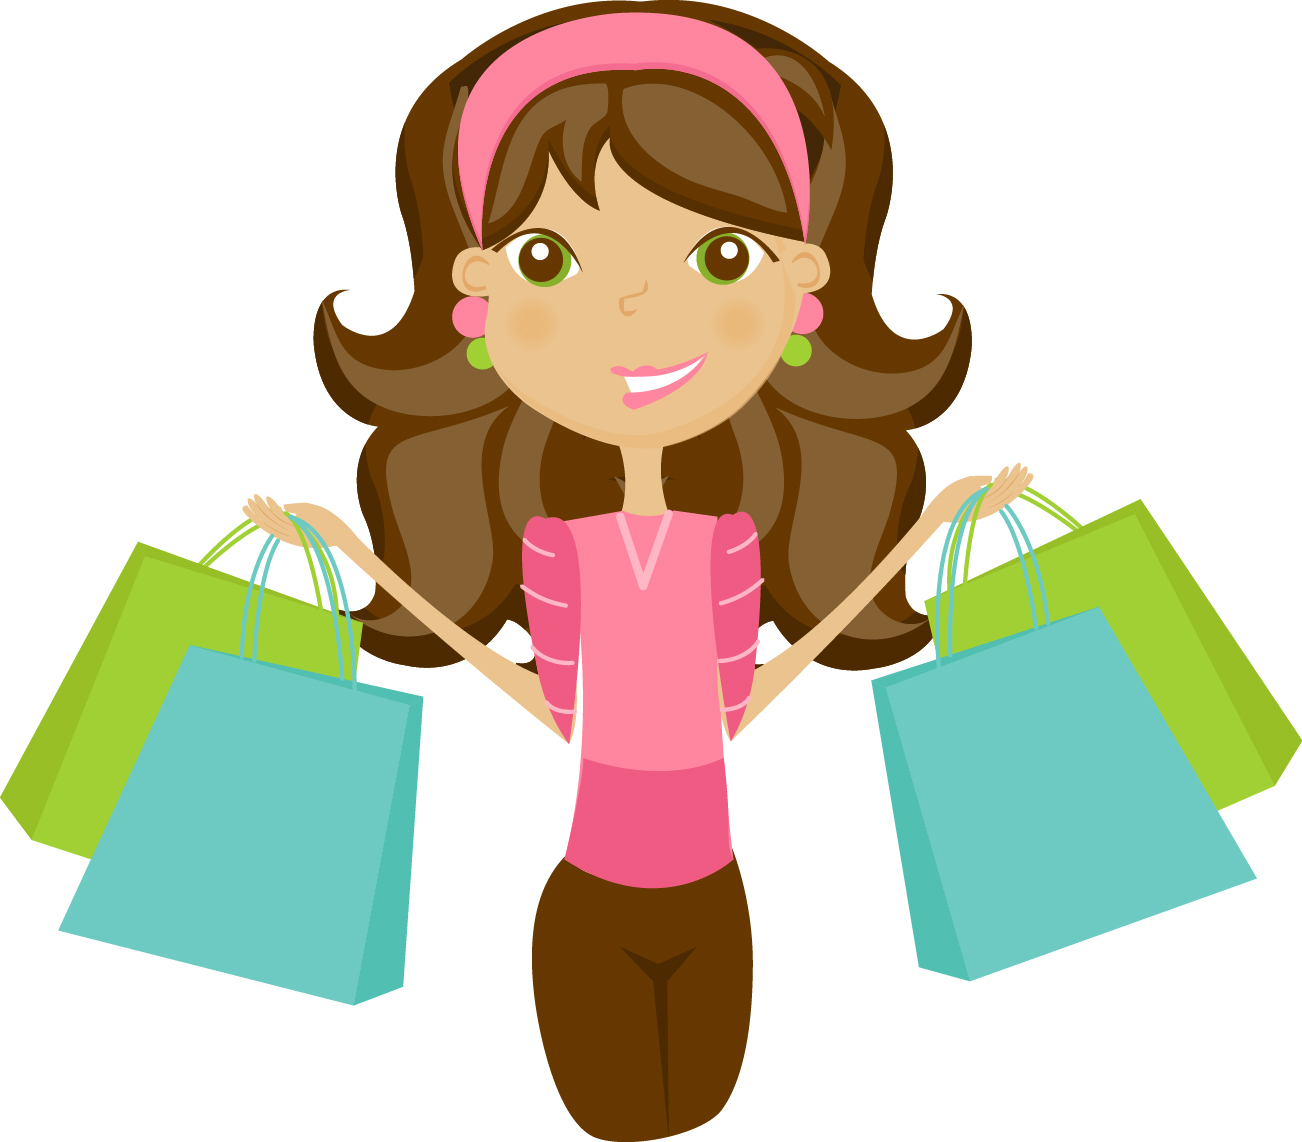 551 Shopping Bags free clipart.